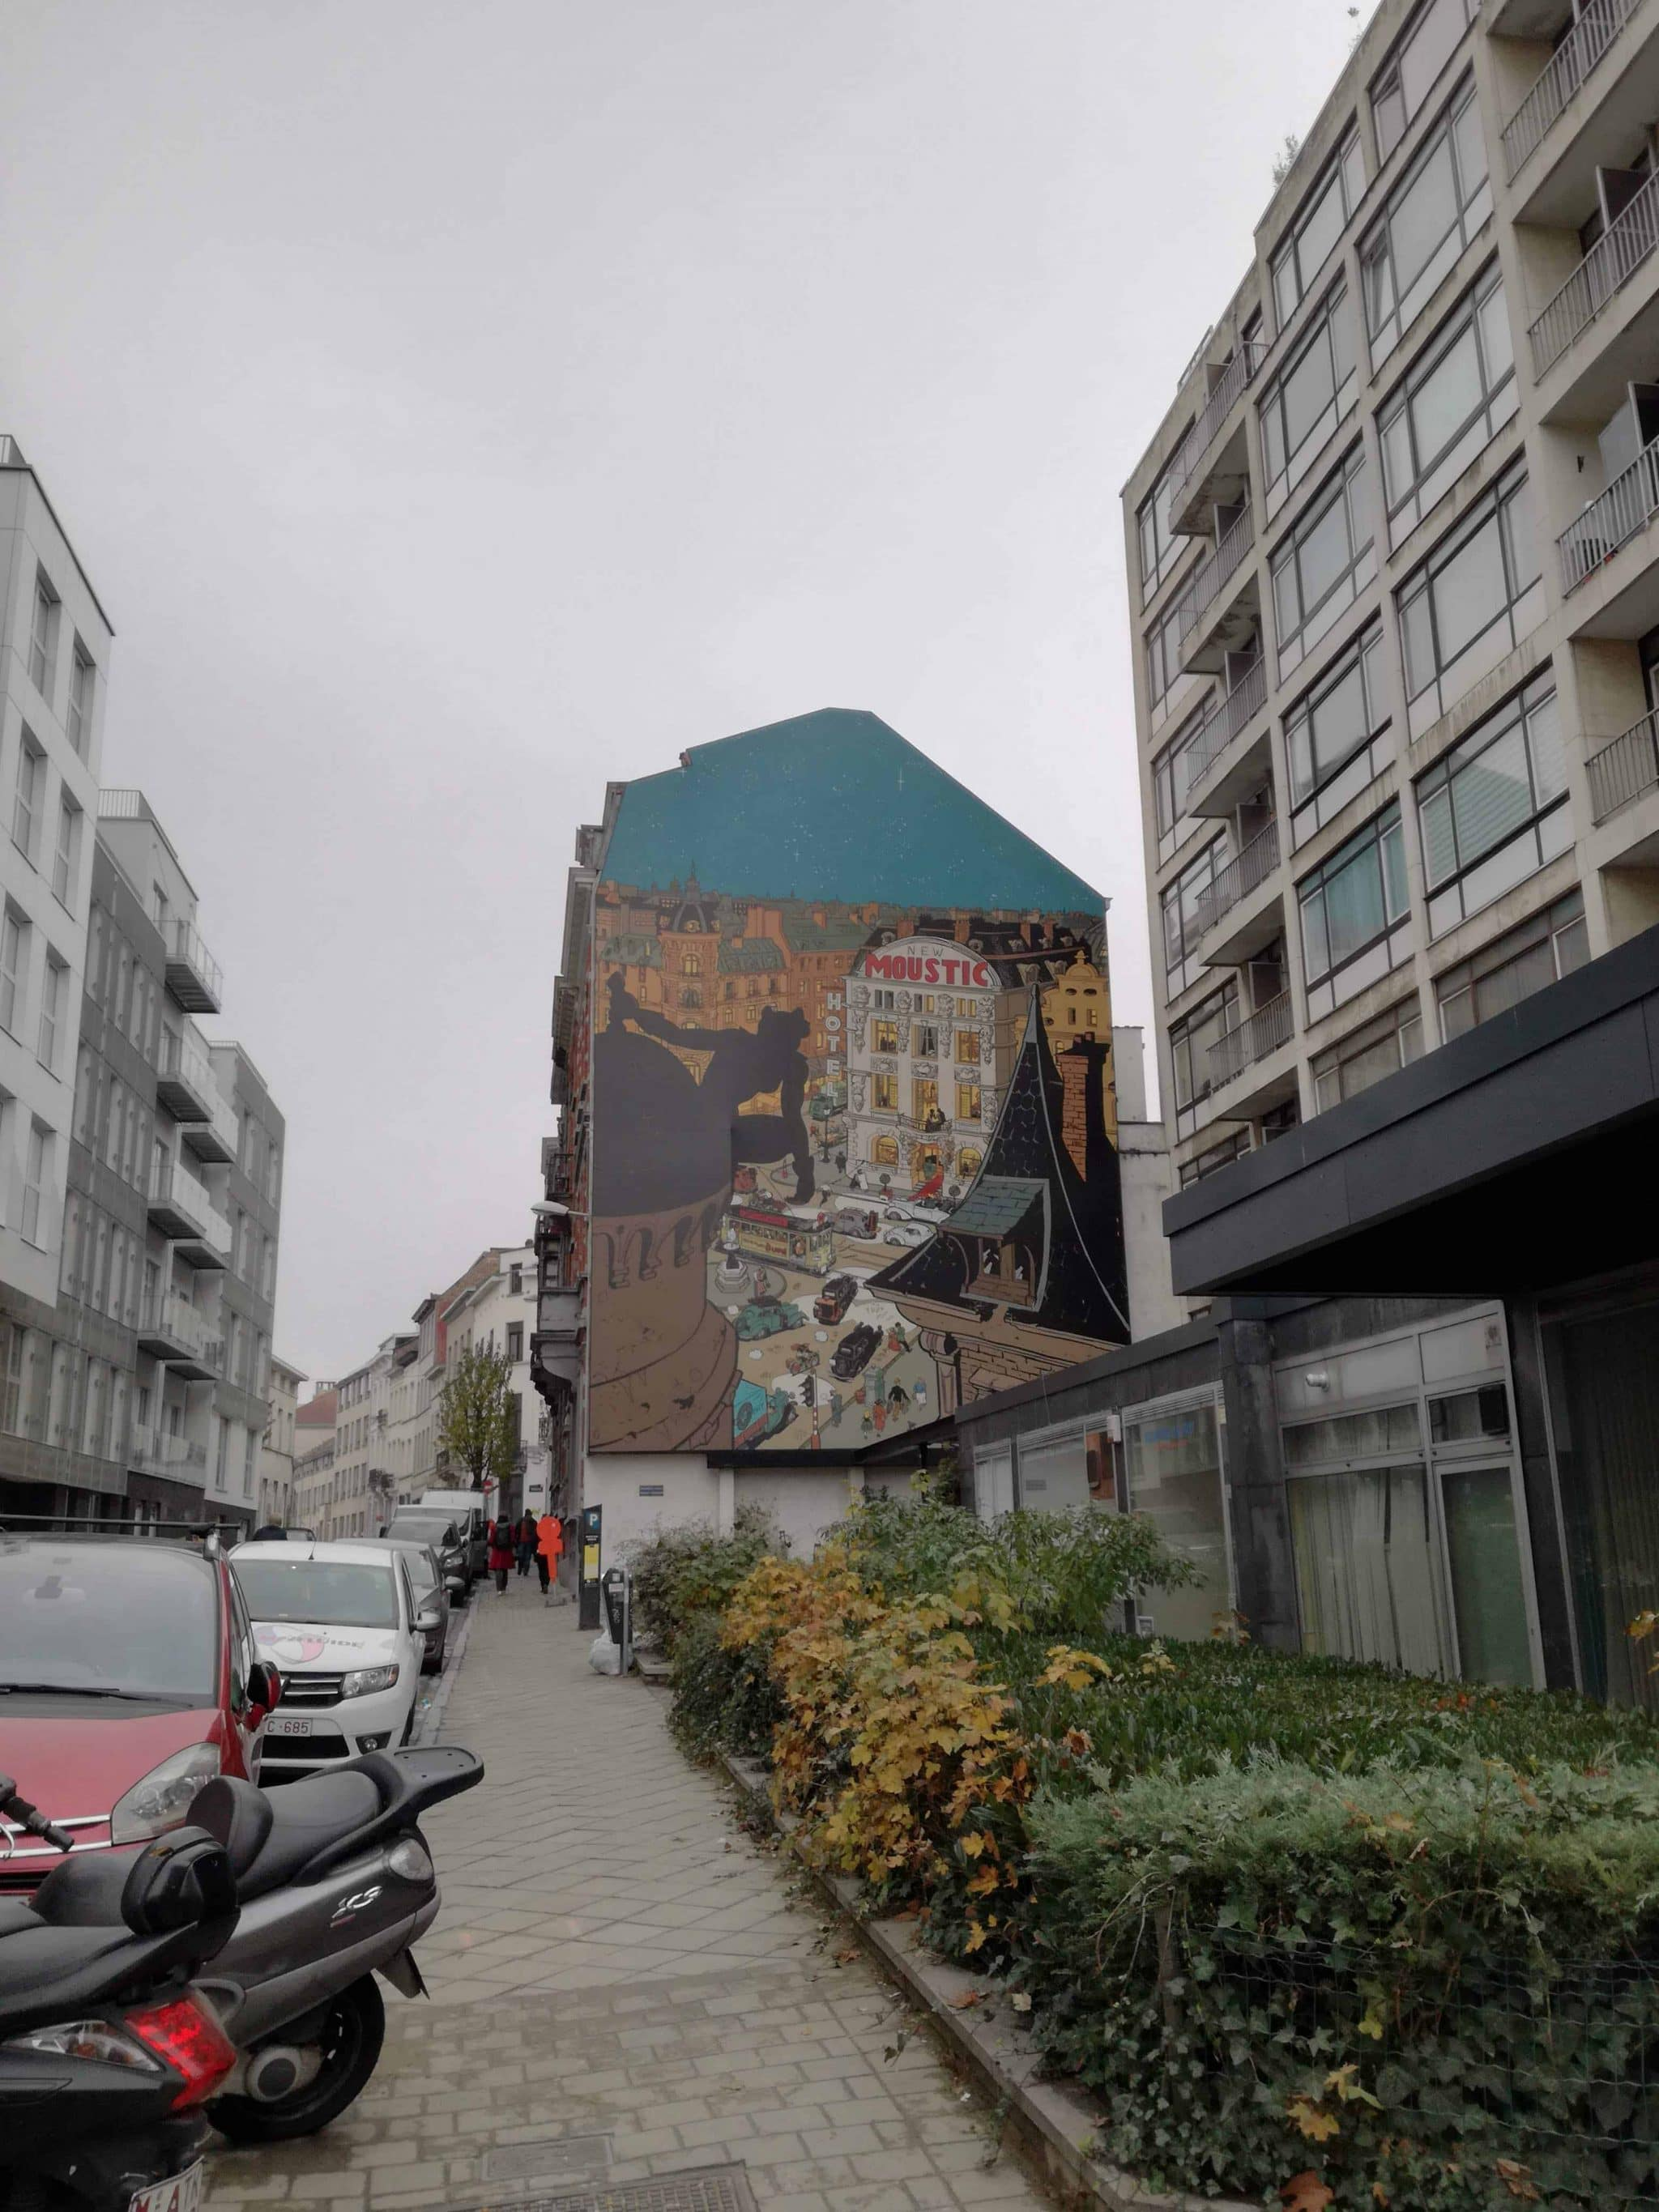 A wall painting in Brussels